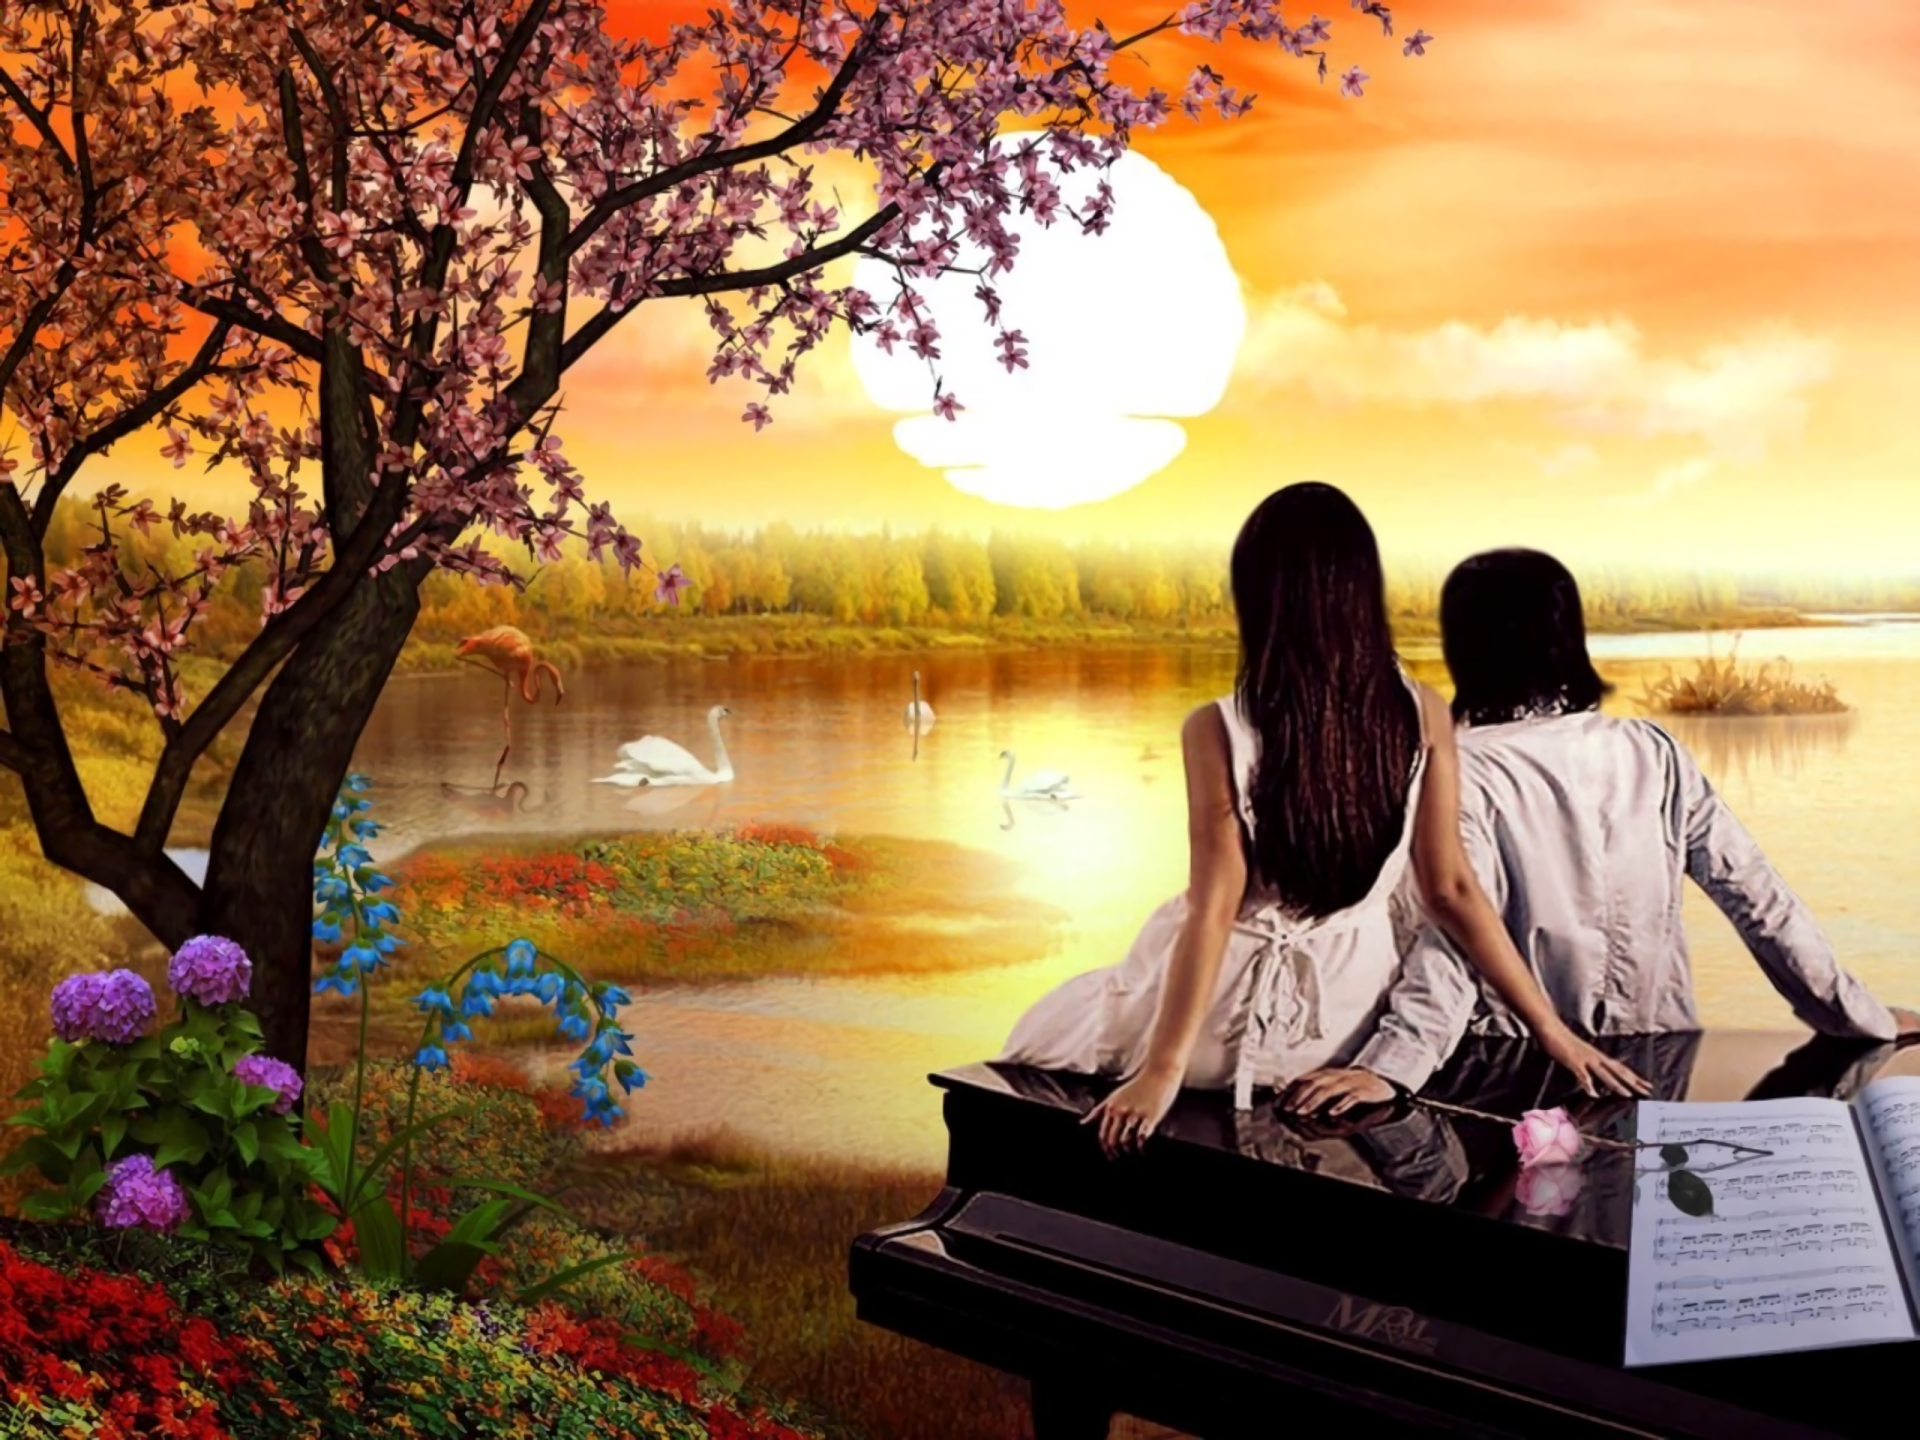 Artistic - Love  Pond Flower Sunset Artistic Wallpaper